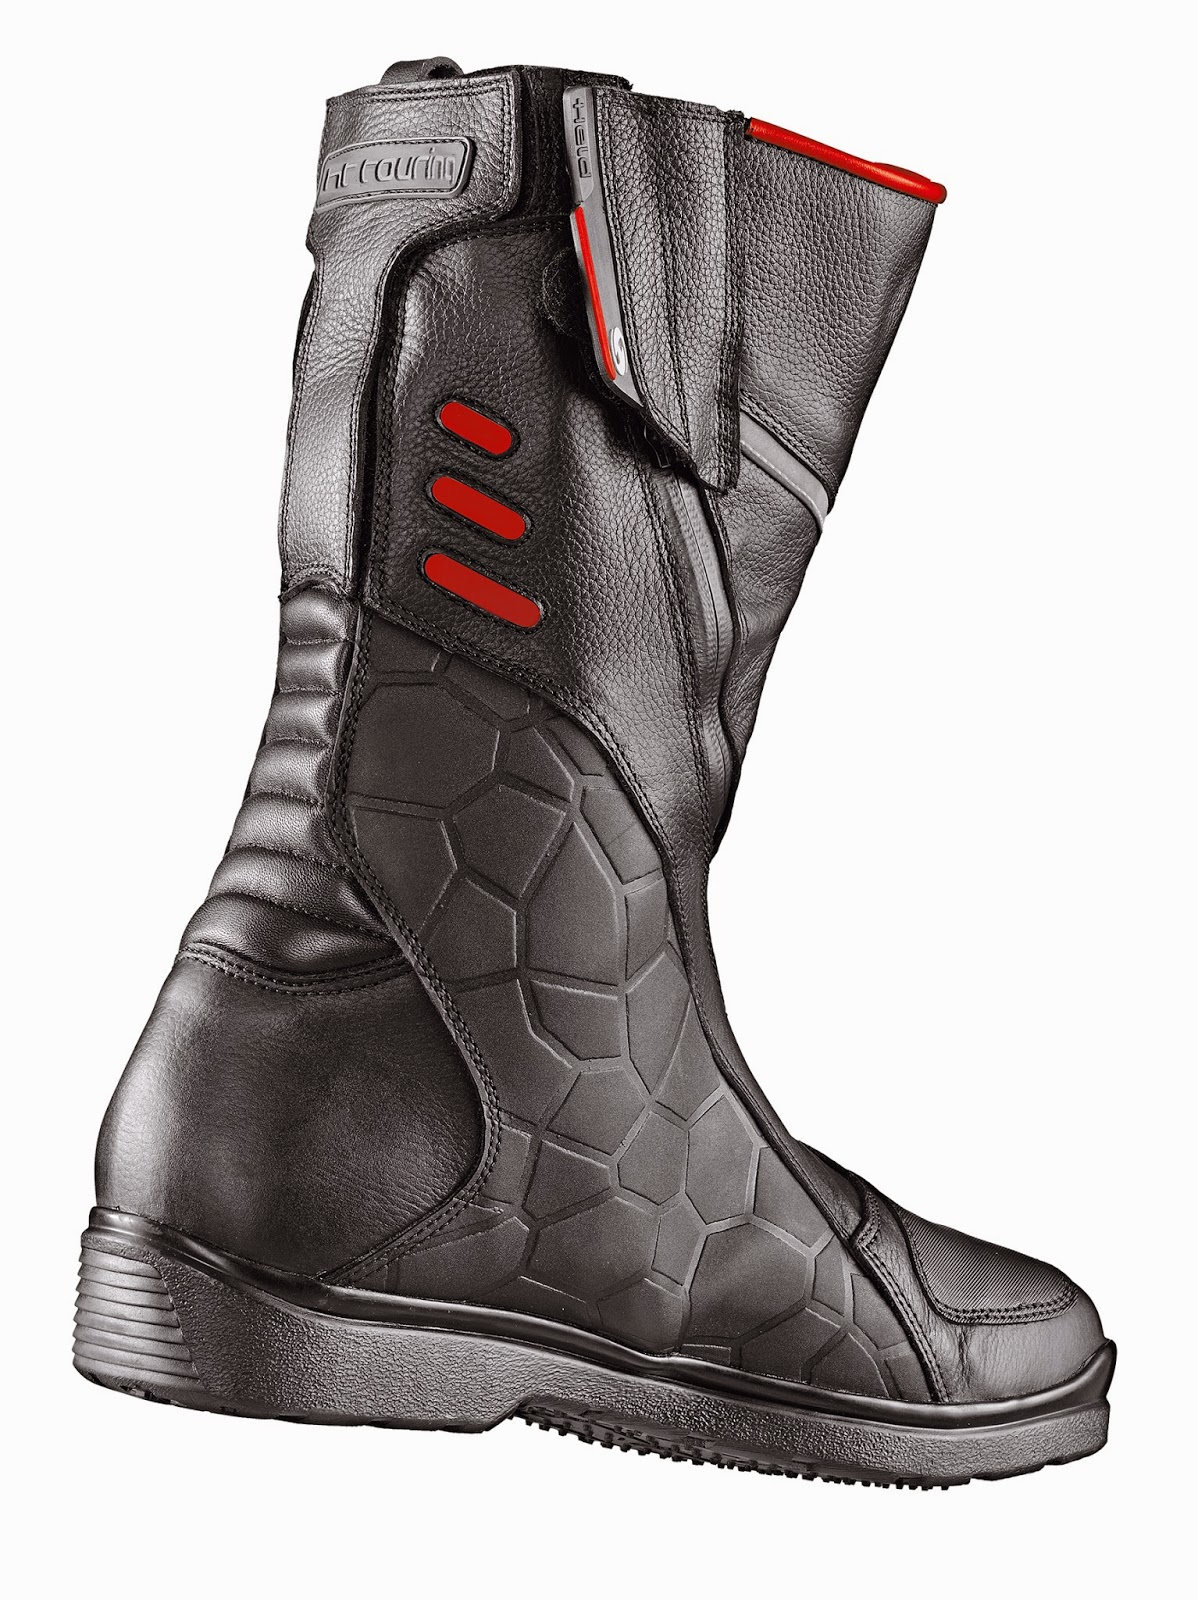 Held Bike Gear: NEW! For 2015: The Held 'Conan' Touring boot